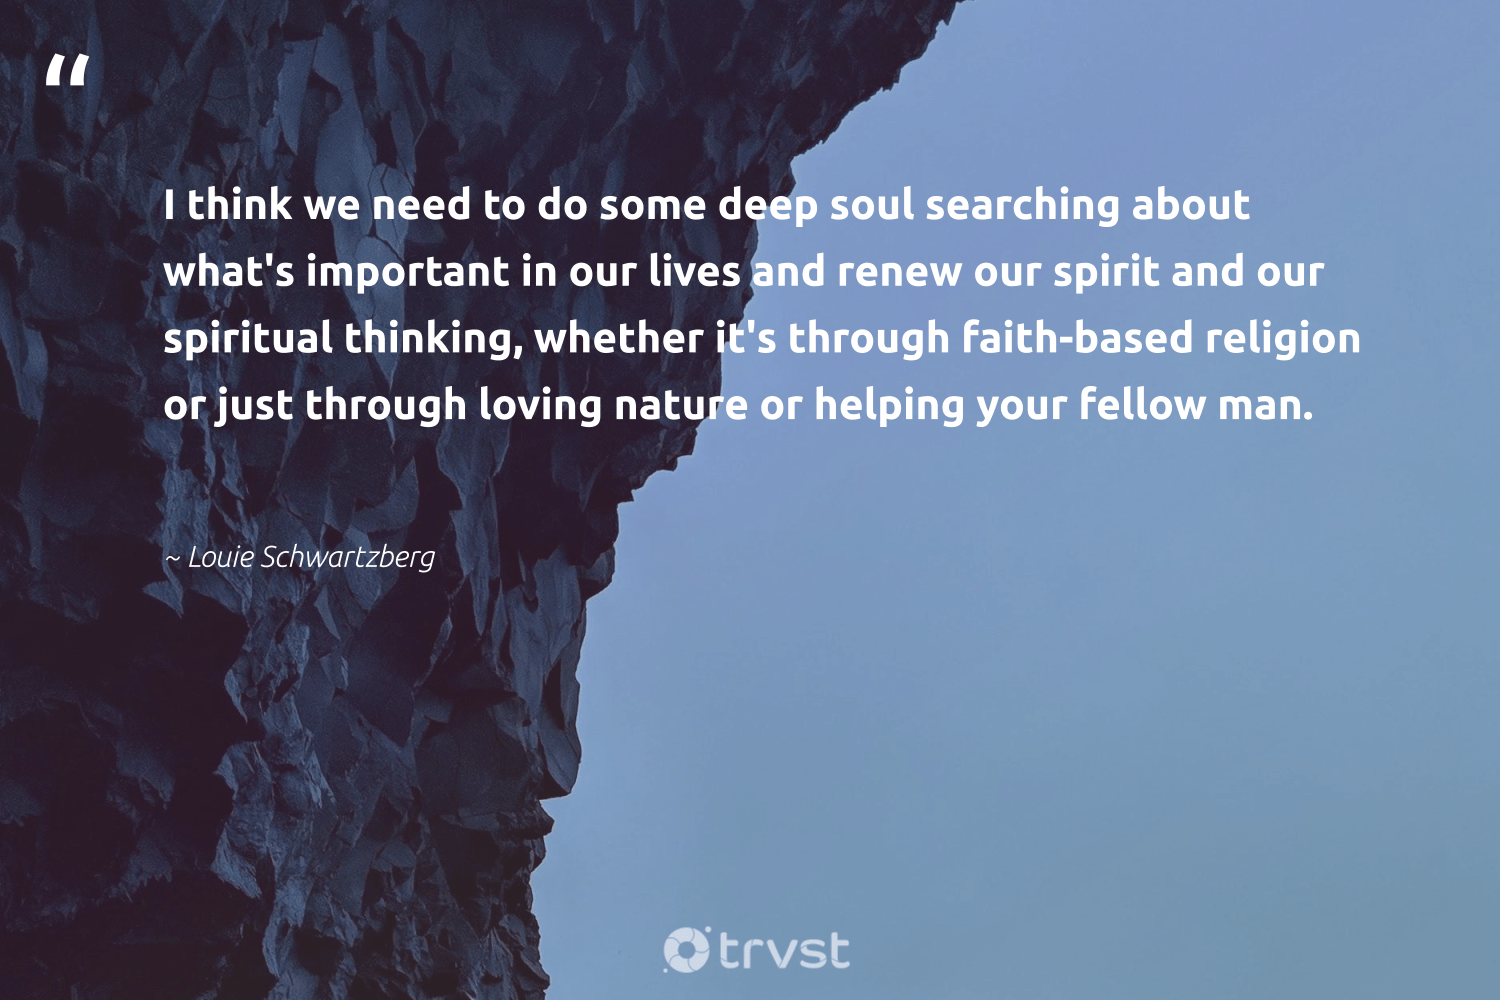 """""""I think we need to do some deep soul searching about what's important in our lives and renew our spirit and our spiritual thinking, whether it's through faith-based religion or just through loving nature or helping your fellow man.""""  - Louie Schwartzberg #trvst #quotes #environment #nature #spiritual #mothernature #volunteer #ecofriendly #beinspired #earth #giveback #getoutside"""